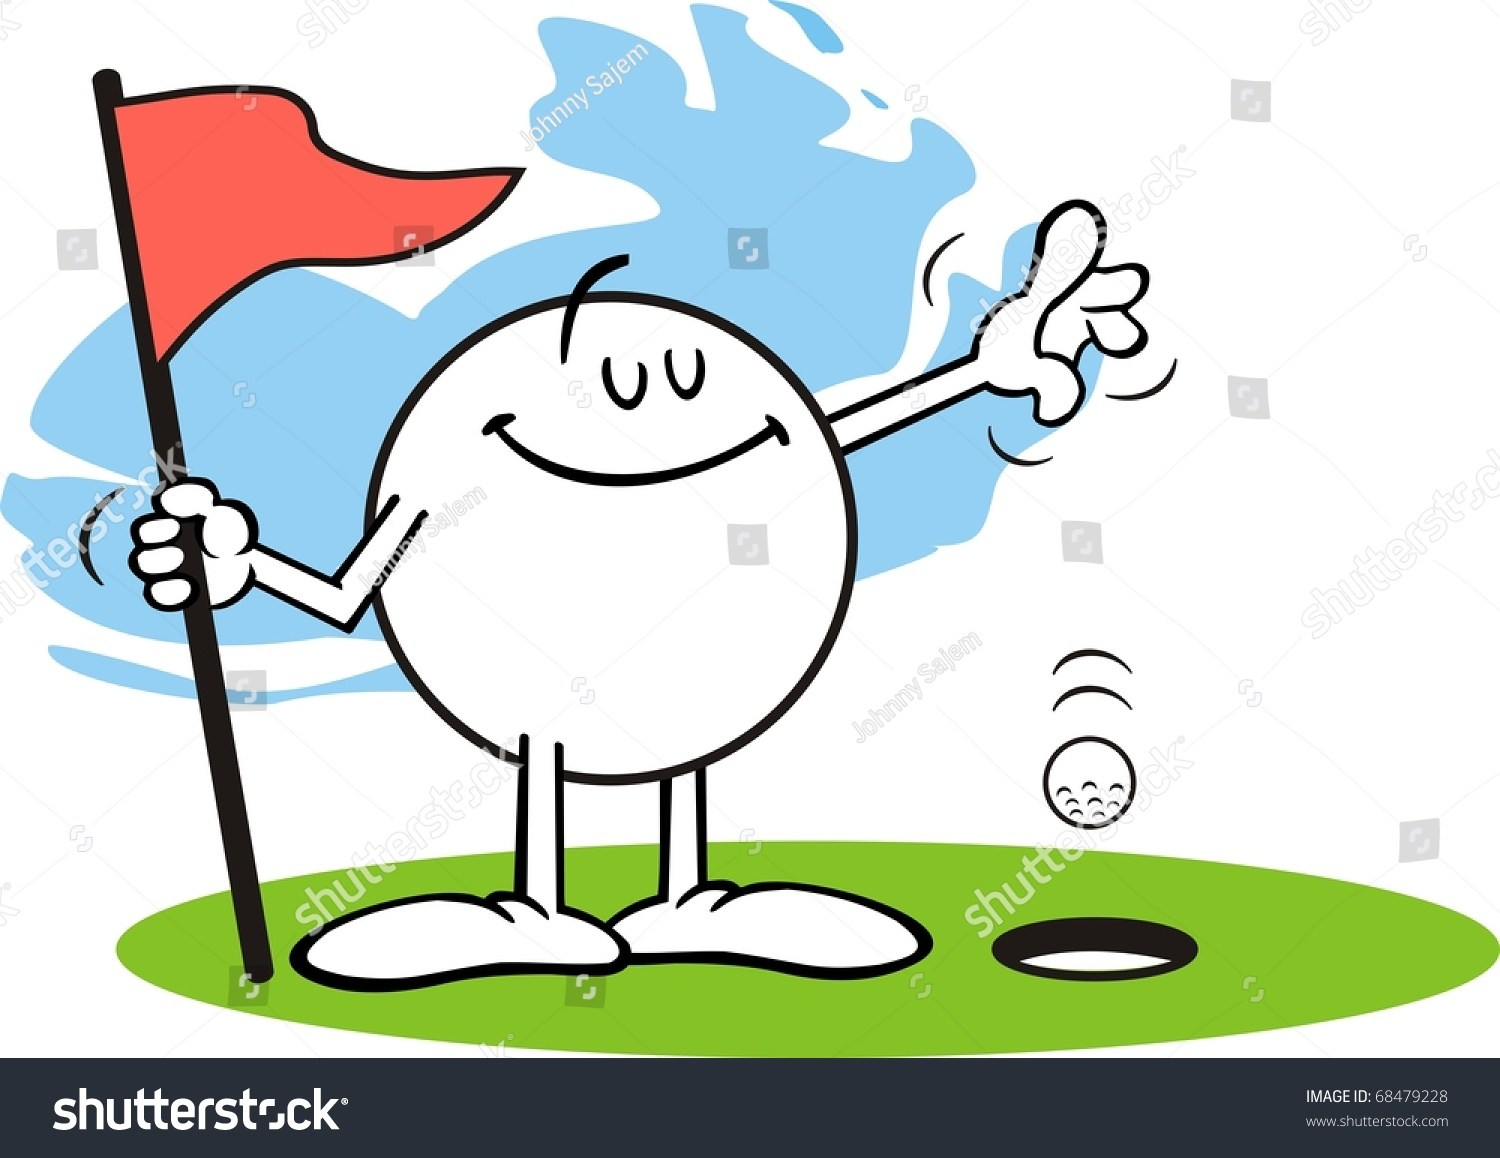 Hole in one clipart images png transparent download Hole in one clipart 8 » Clipart Portal png transparent download